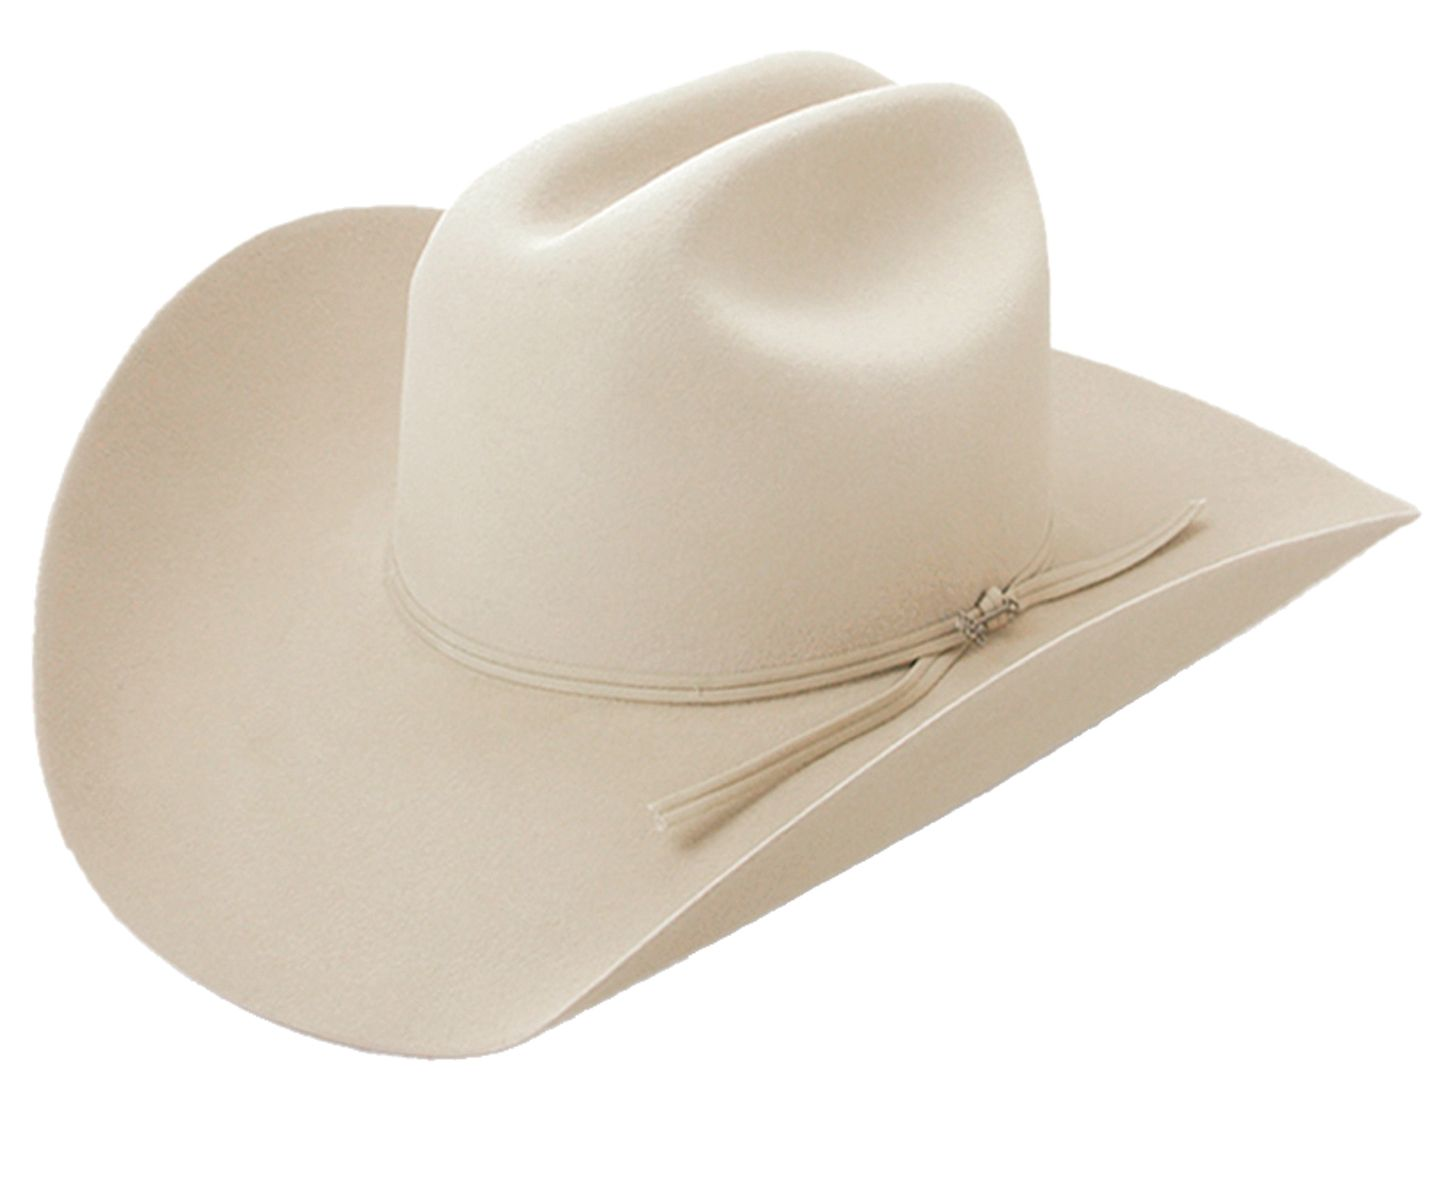 stetson hat 2014 designs collection for and